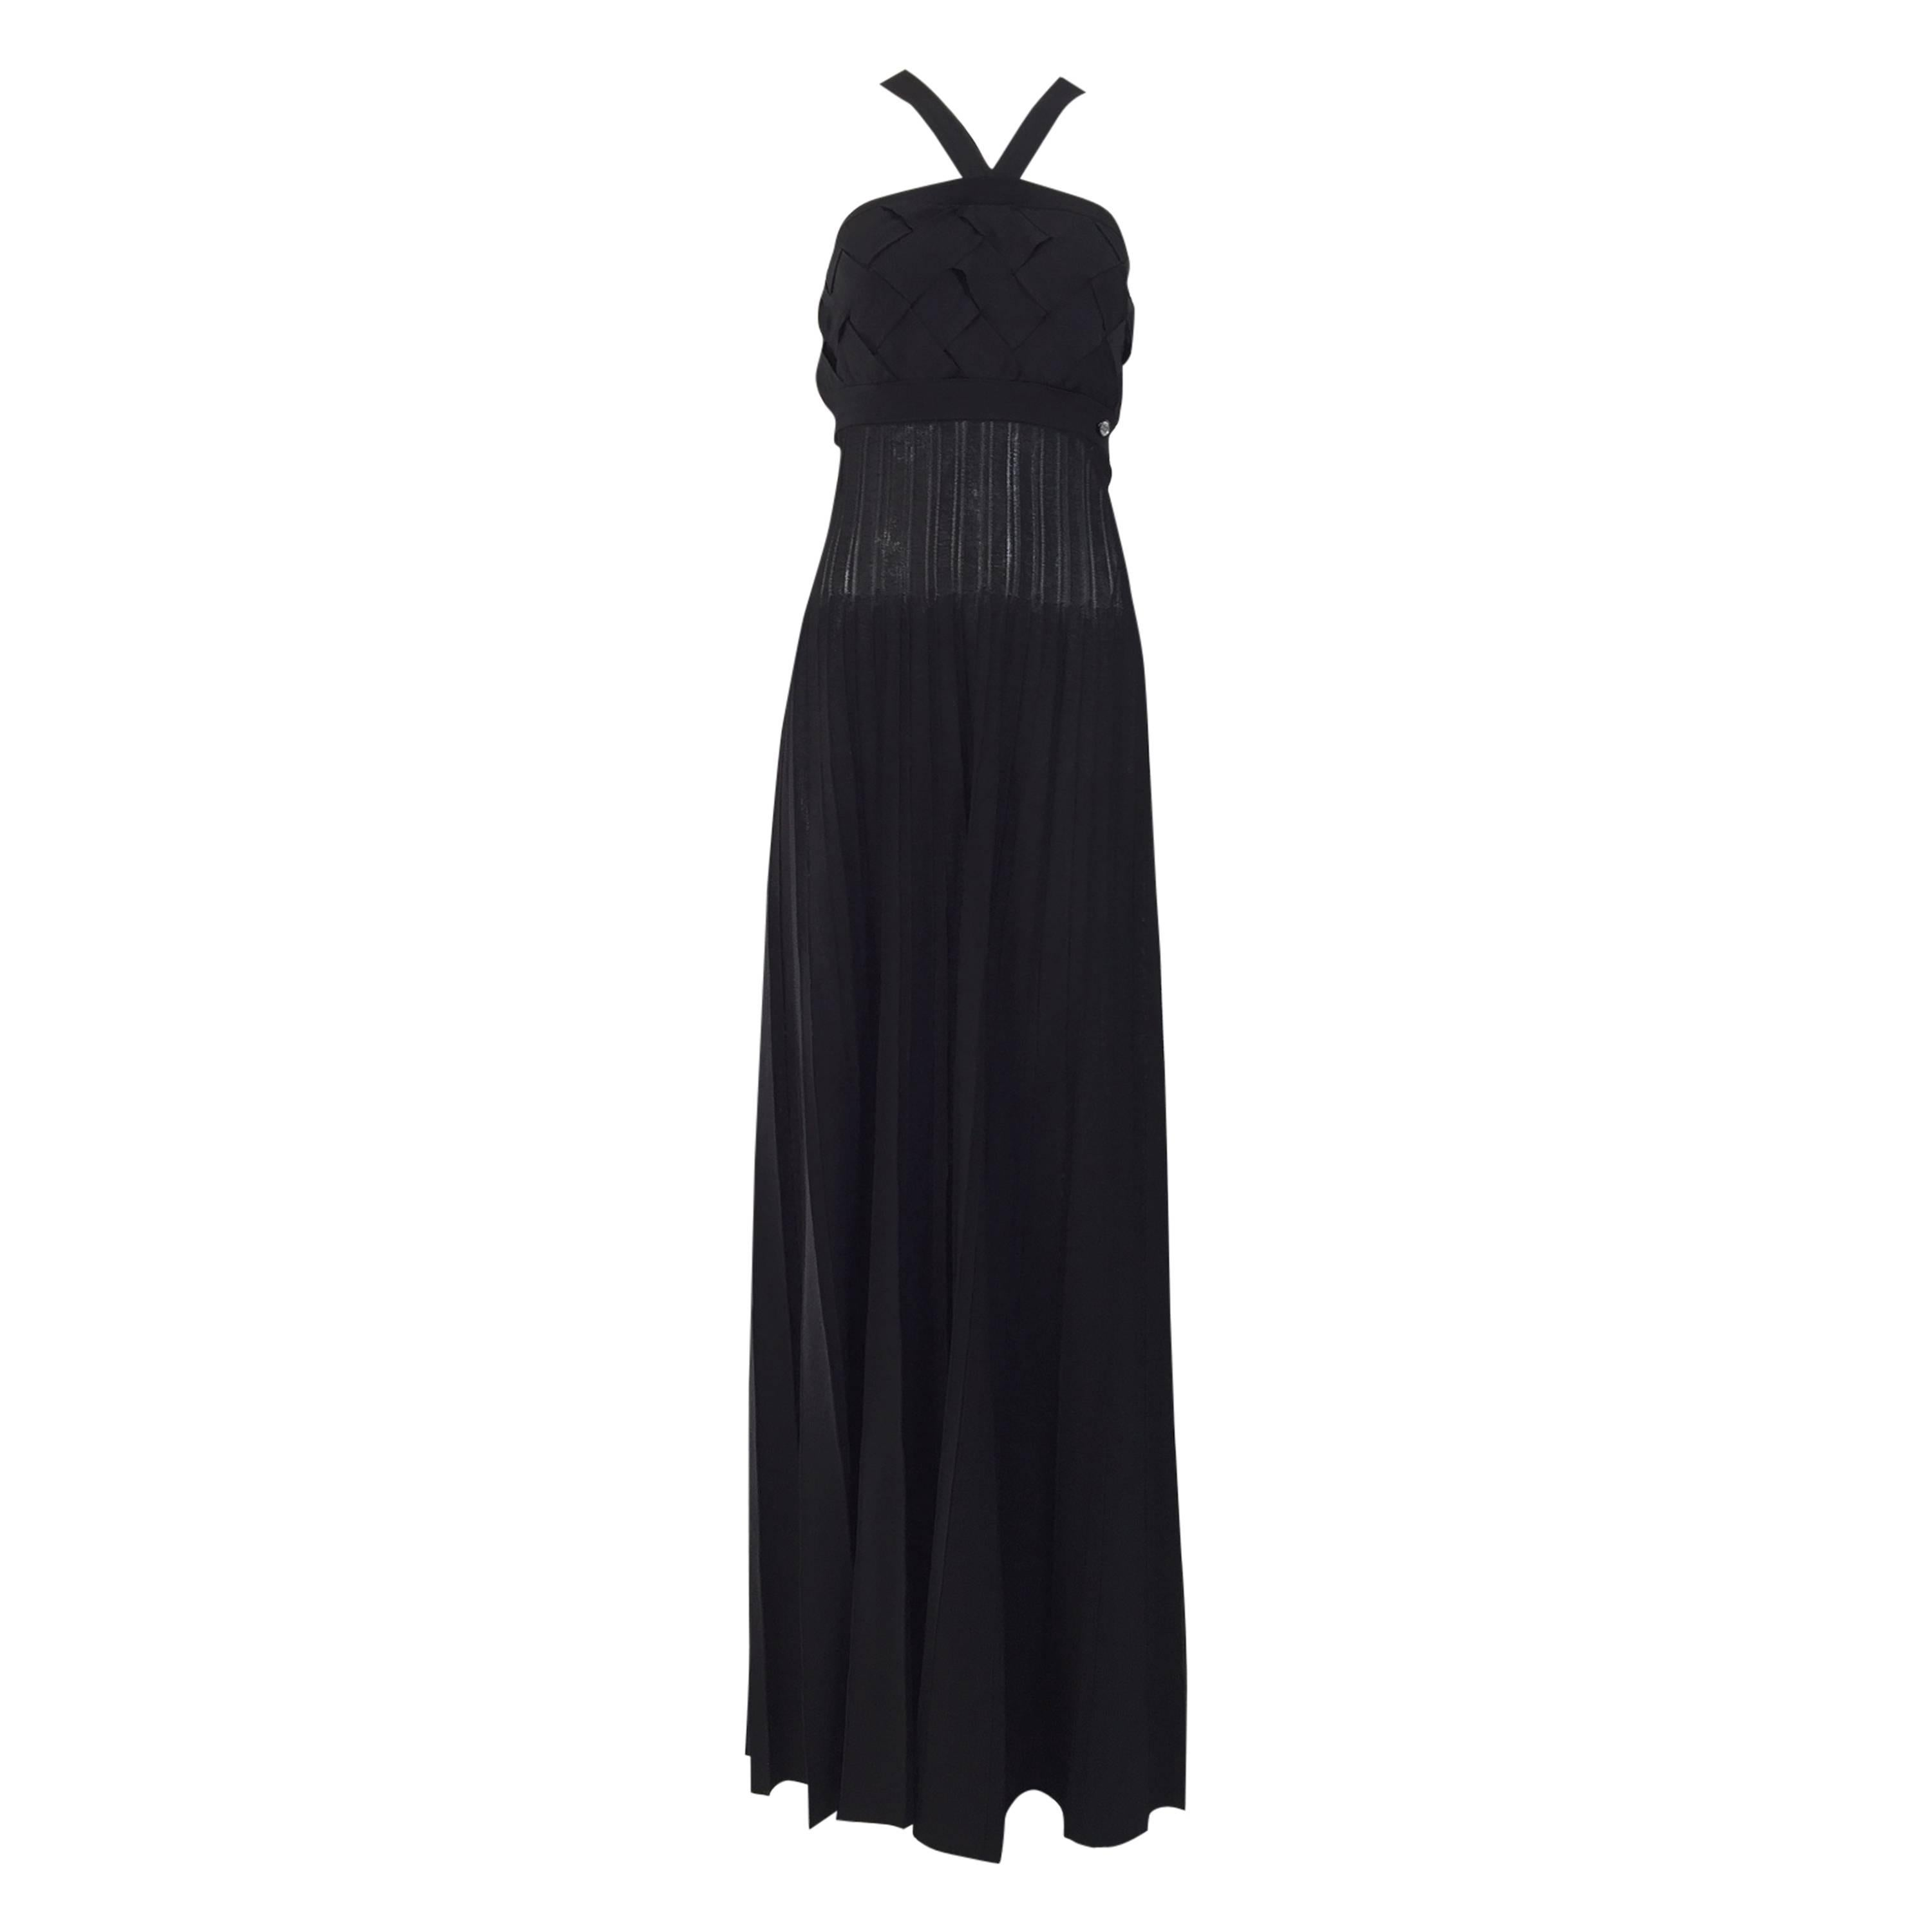 Chanel Black Knit Maxi Dress